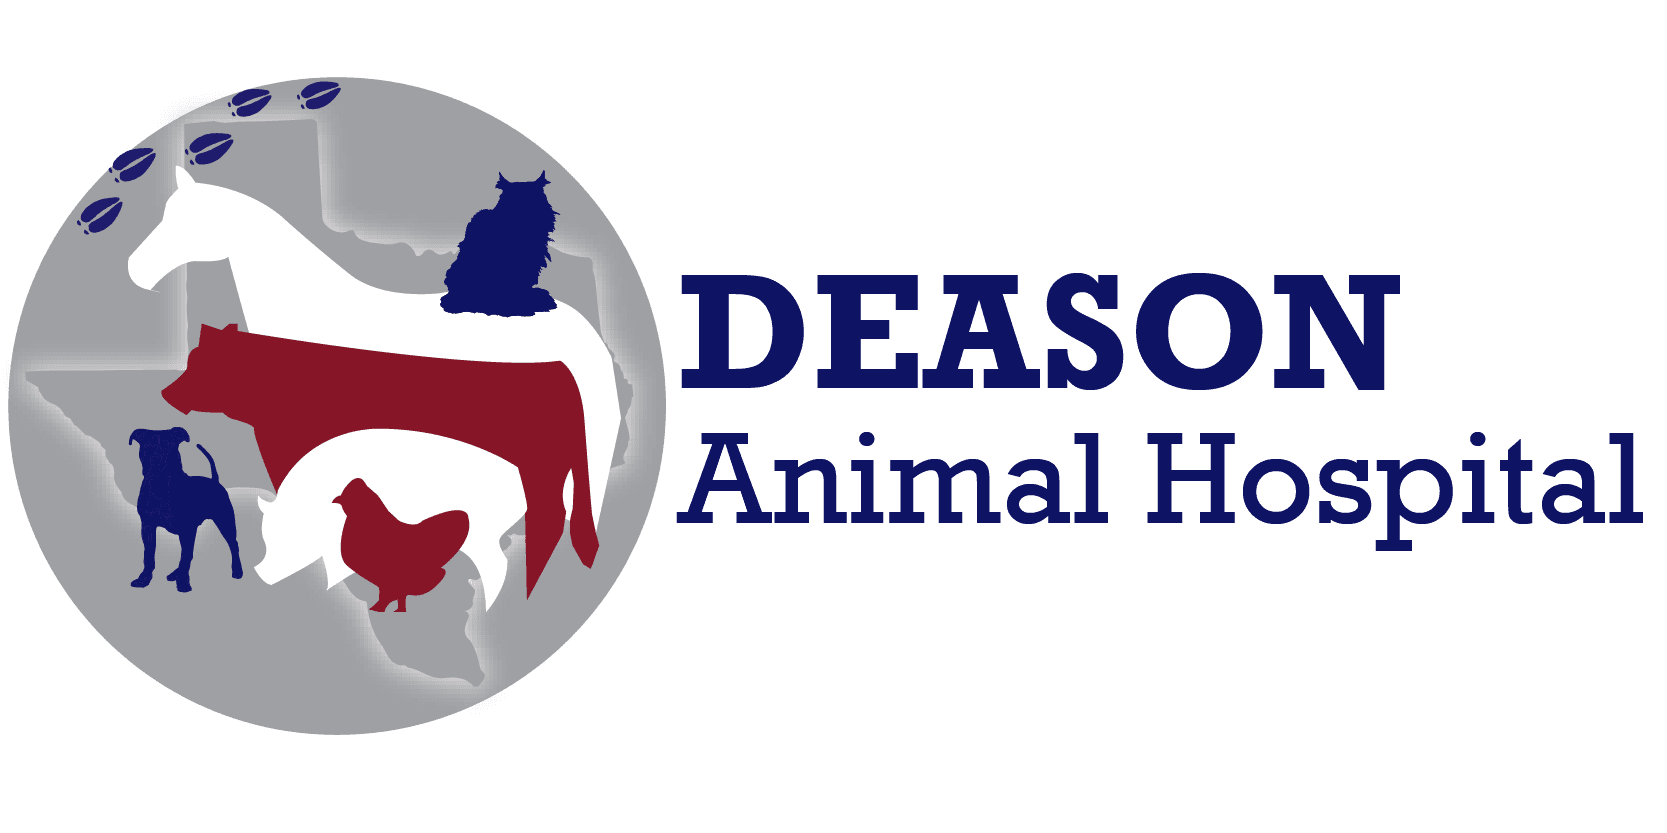 Dog and Cat veterinarians serving Floresville Texas, Stockdale, Pleasanton and Wilson County Texas